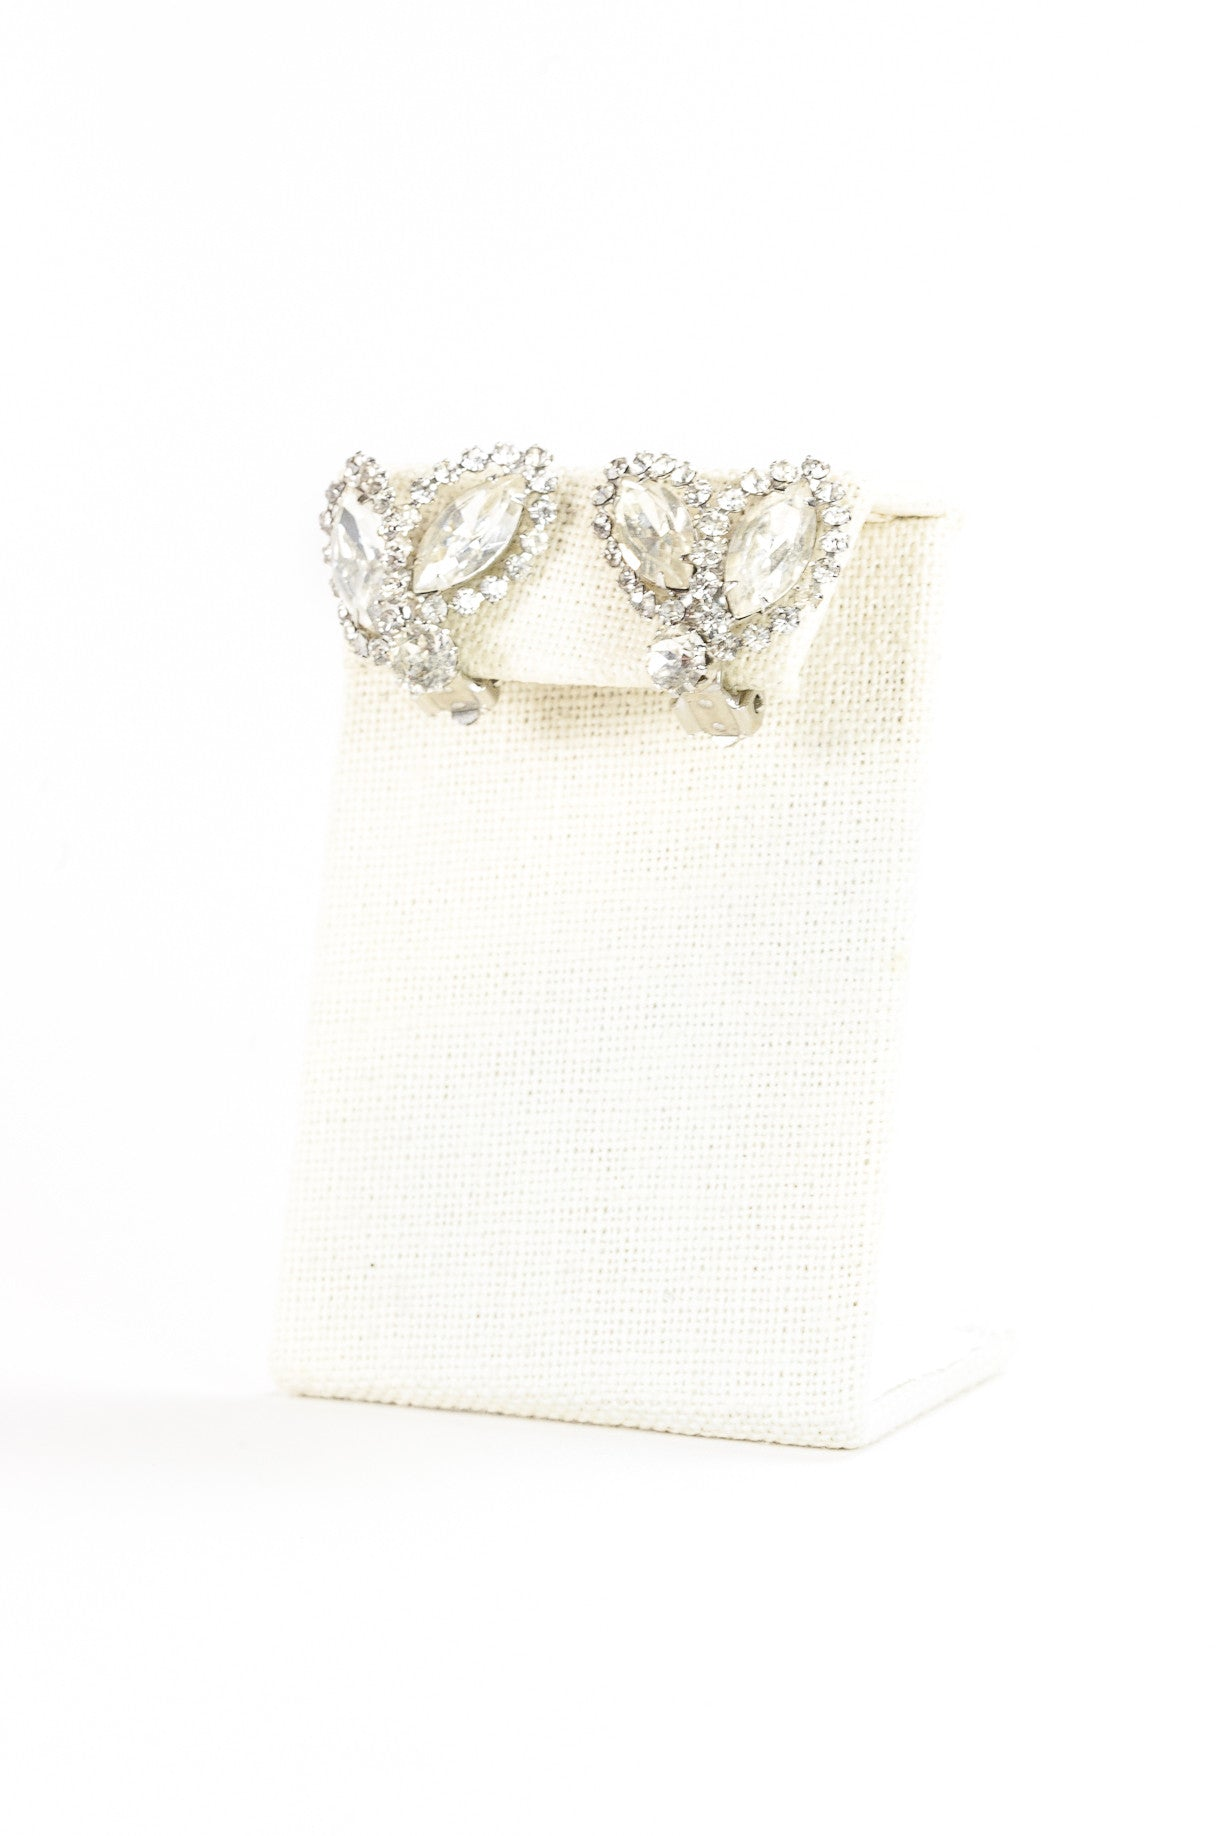 50's__Weiss__Rhinestone Leaf Shaped Clips